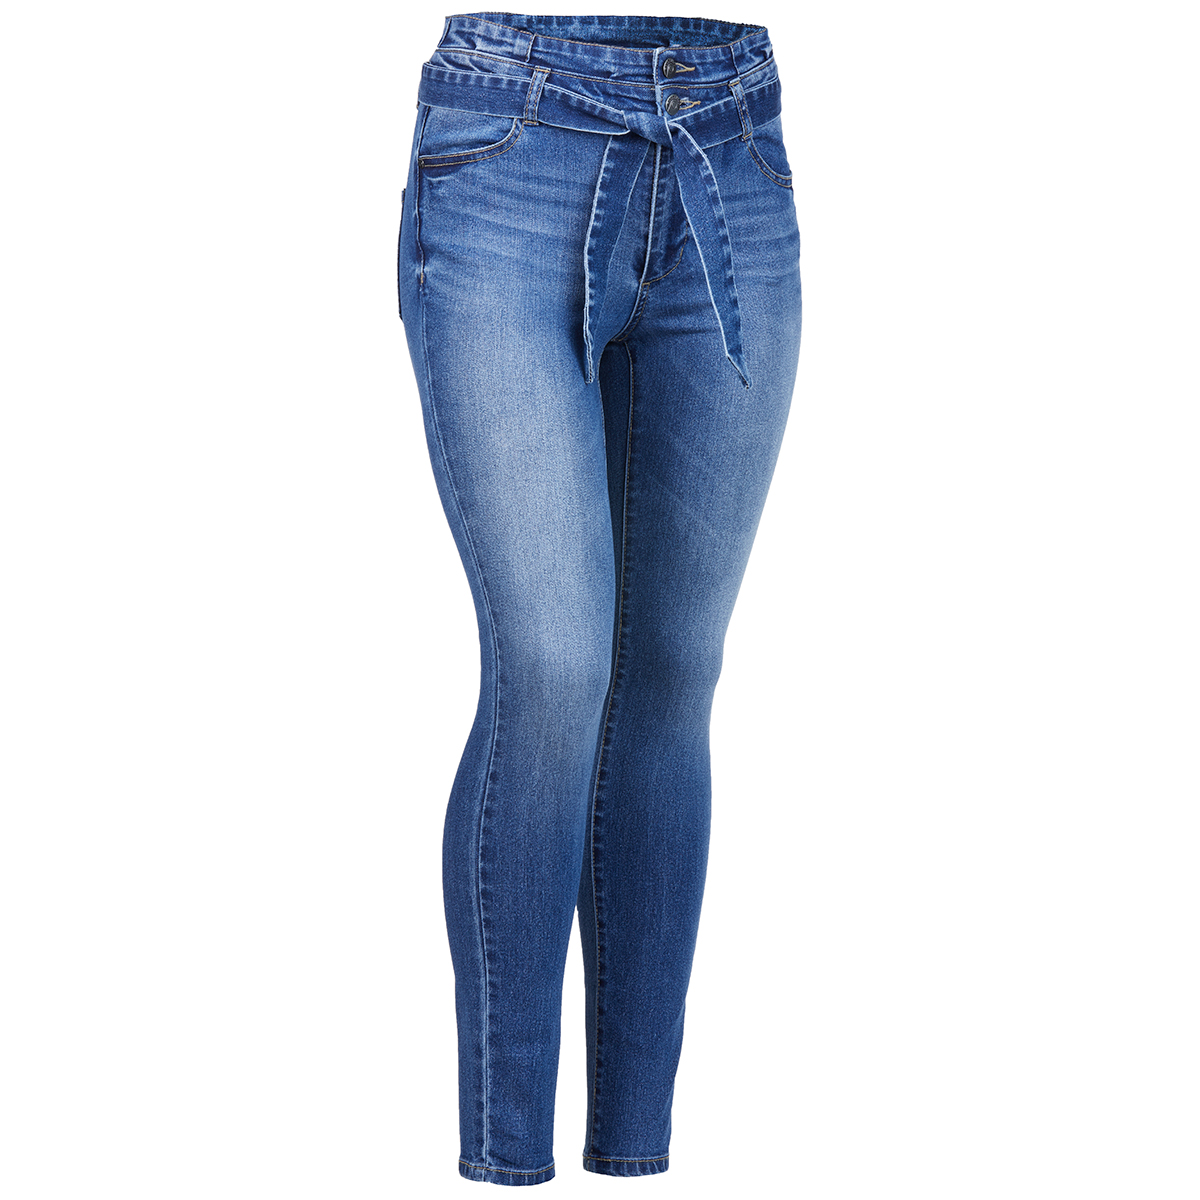 Blue Spice Juniors' Paper Bag Skinny Jeans